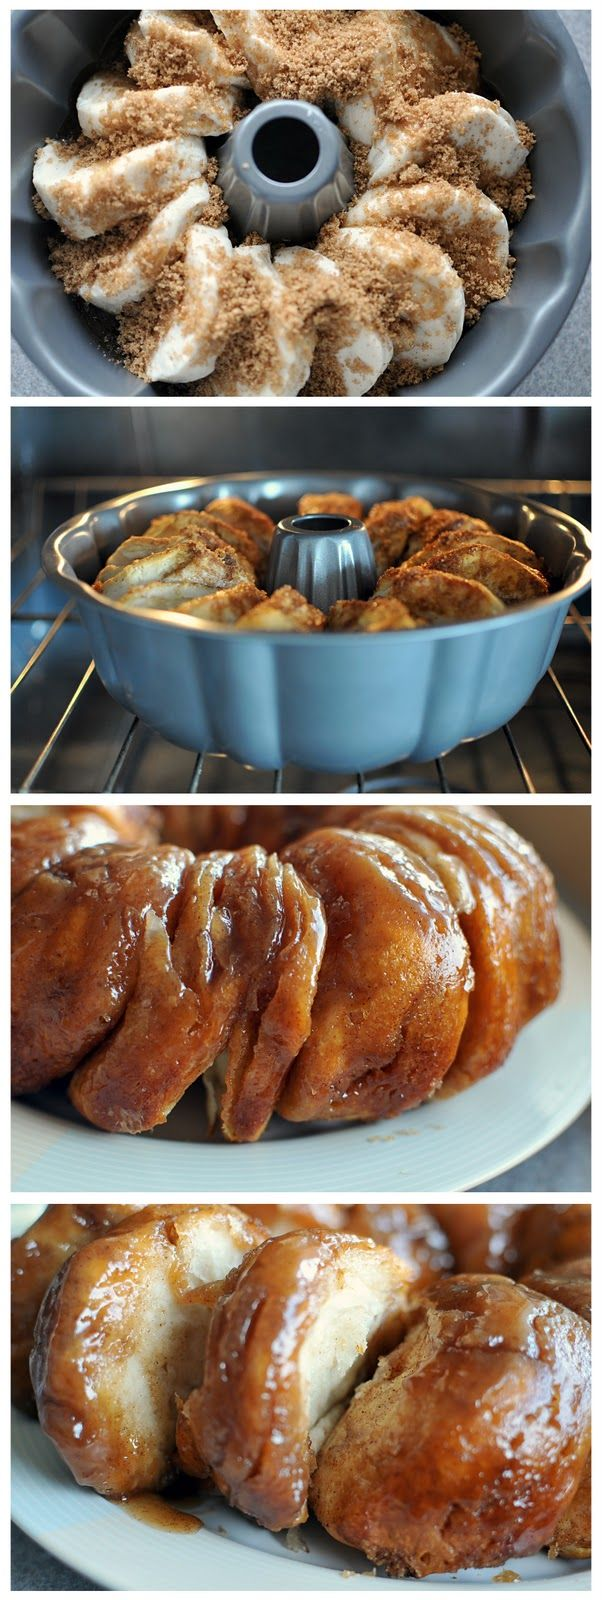 sticky bun breakfast ring using buttermilk biscuits.: Buttermilk Biscuits, Brown Sugar, Breakfast Rings, Biscuits Cinnamon Rolls, Recipes, Monkey Breads, Sticky Buns, Christmas Mornings, Buns Breakfast